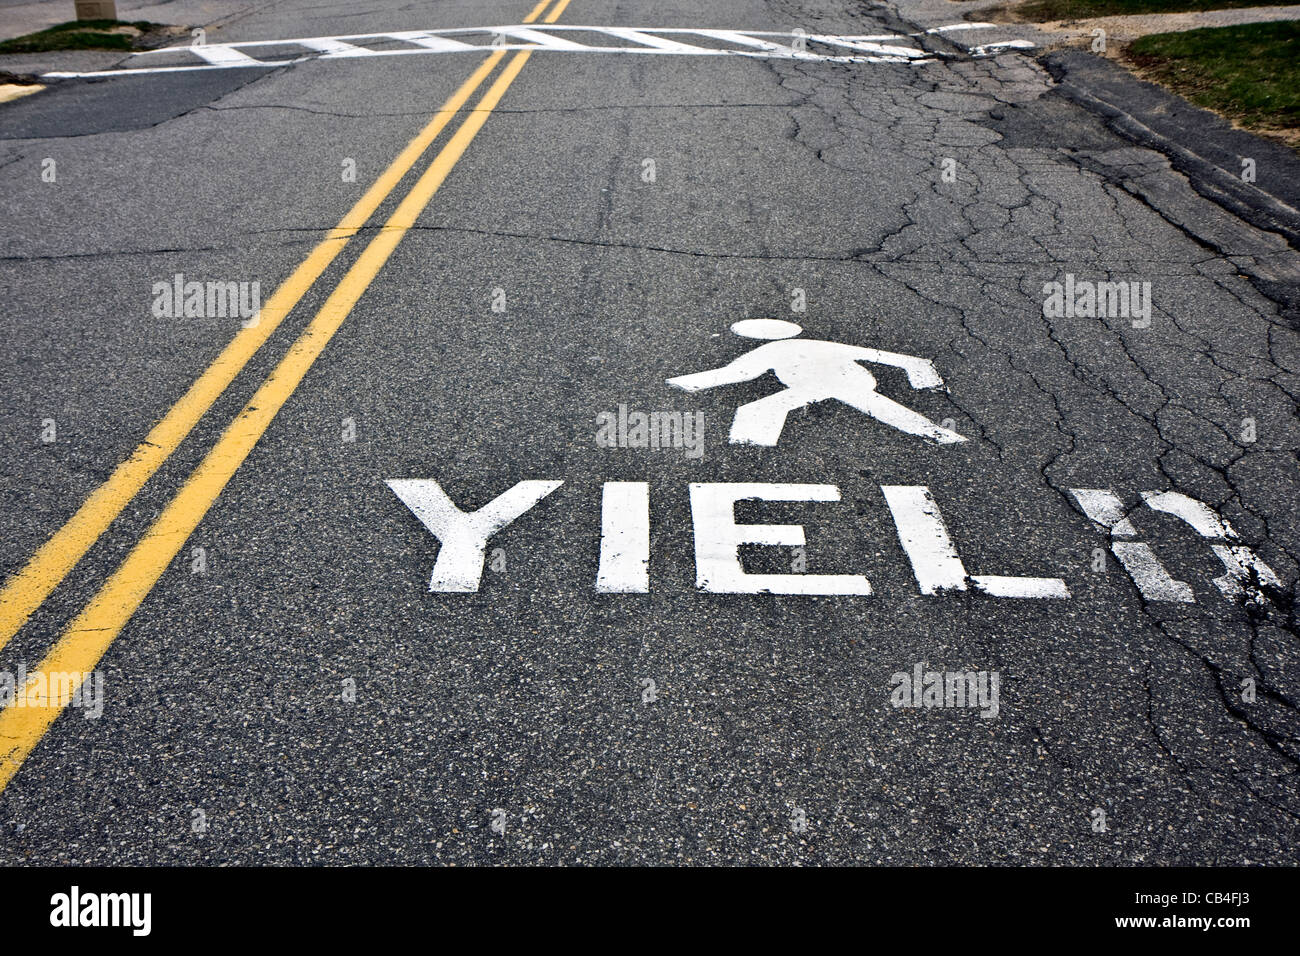 Warning at crossroad saying yield and person sign on asphalt - Stock Image